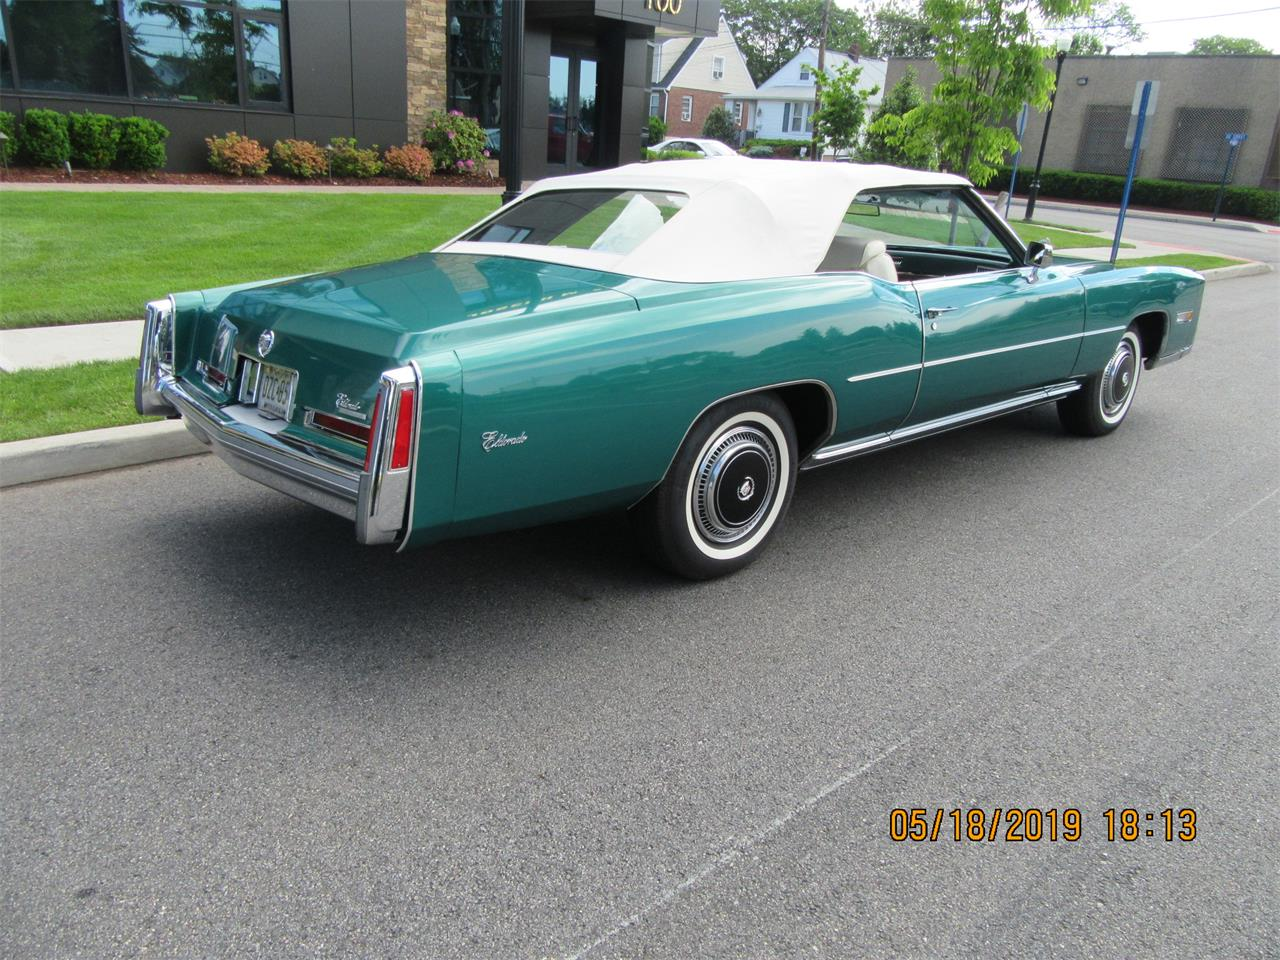 Large Picture of 1976 Cadillac Eldorado located in Mill Hall Pennsylvania Auction Vehicle Offered by Central Pennsylvania Auto Auction - Q5G8